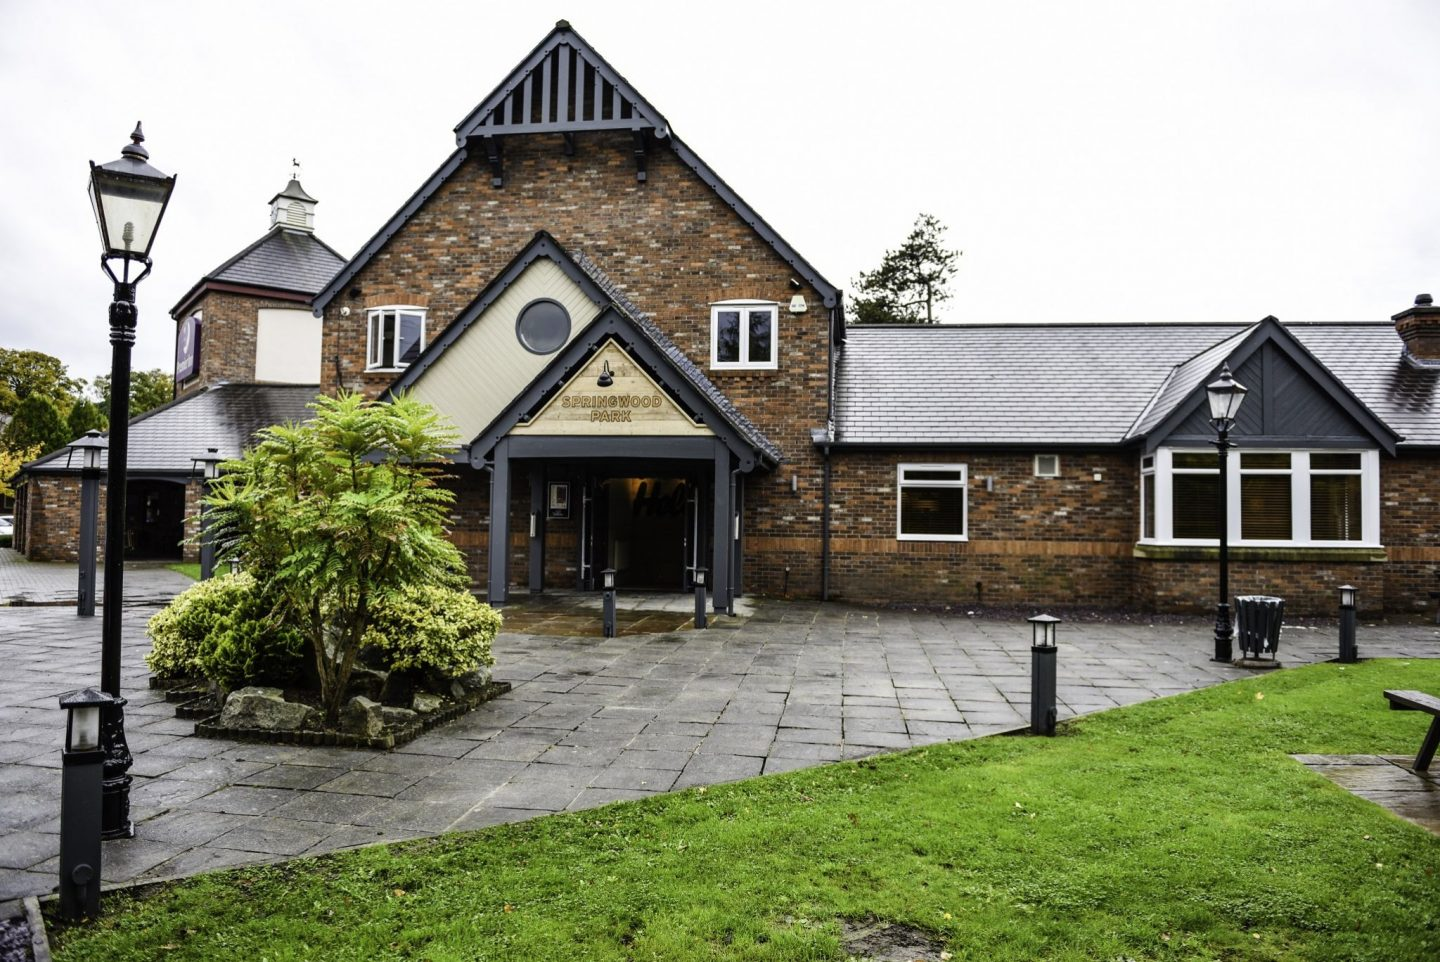 Beefeater-Springwood-Park-Macclesfield-Cheshire-Food-Blogger-Yeah-Lifestyle